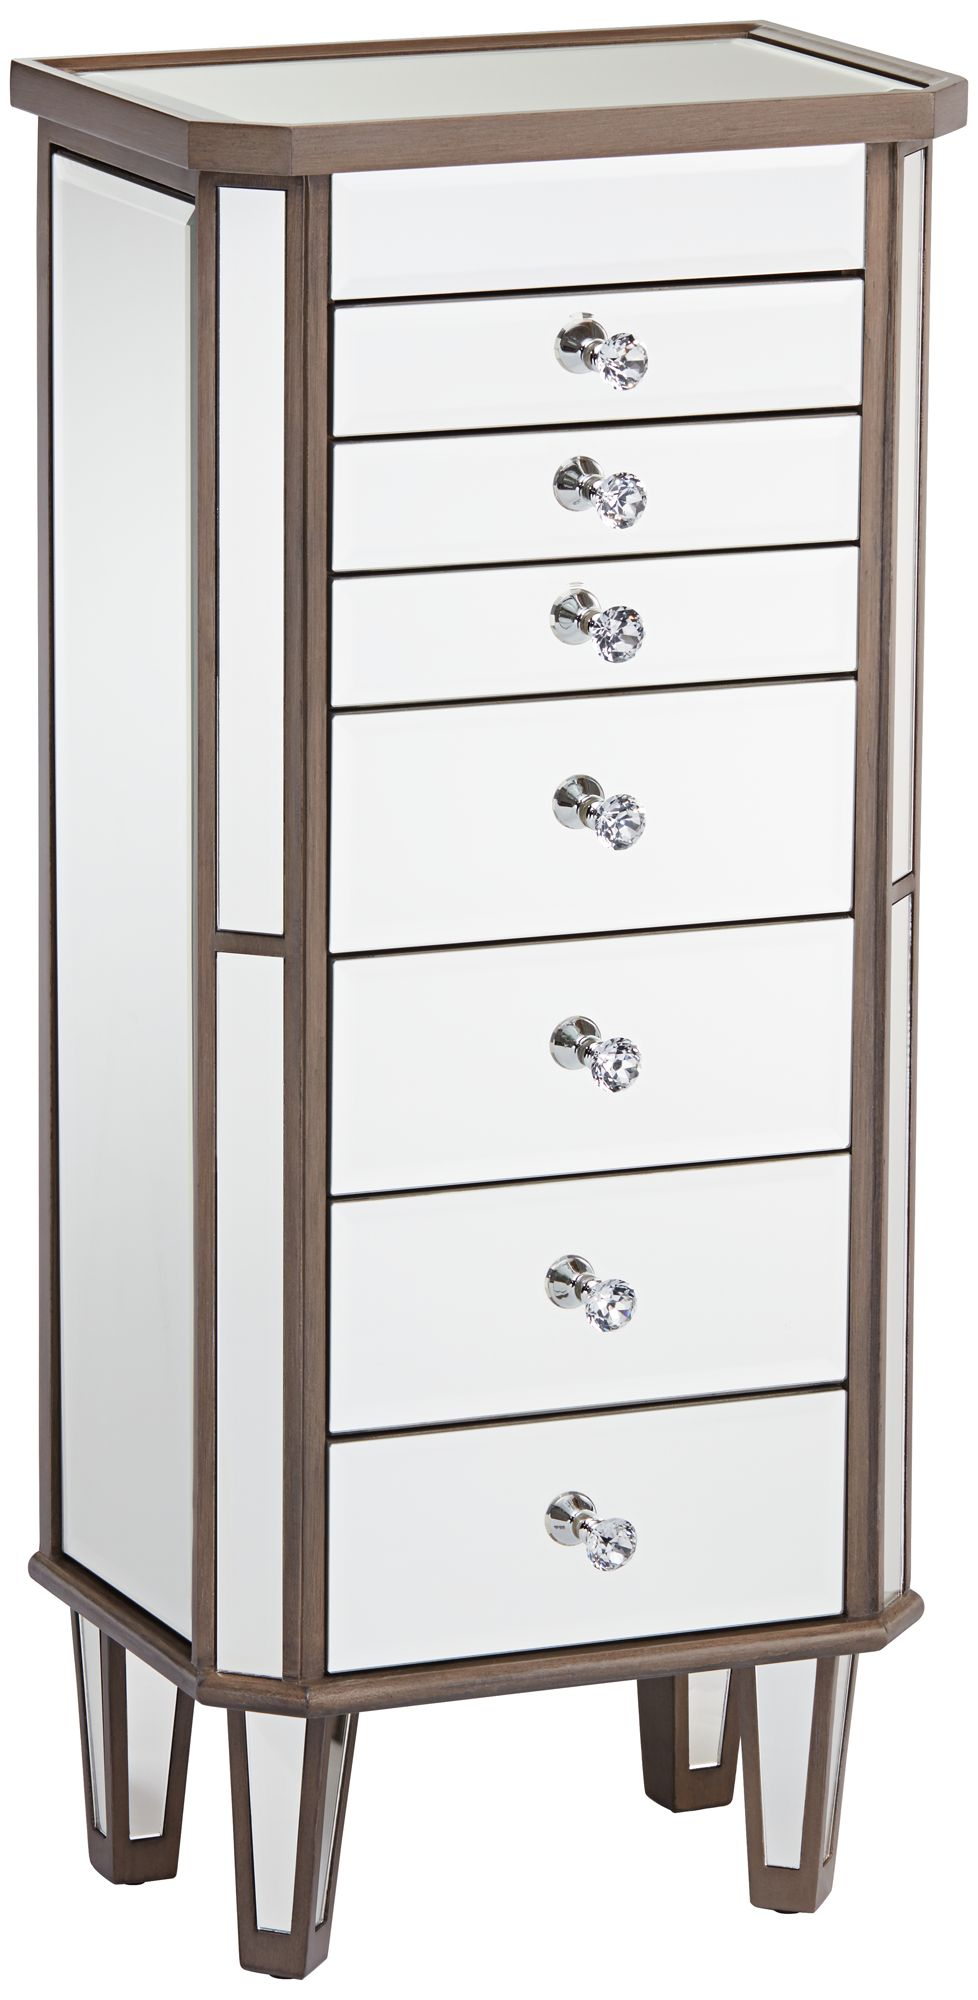 Vicenta 7Drawer Mirrored Contemporary Jewelry Armoire 14H19